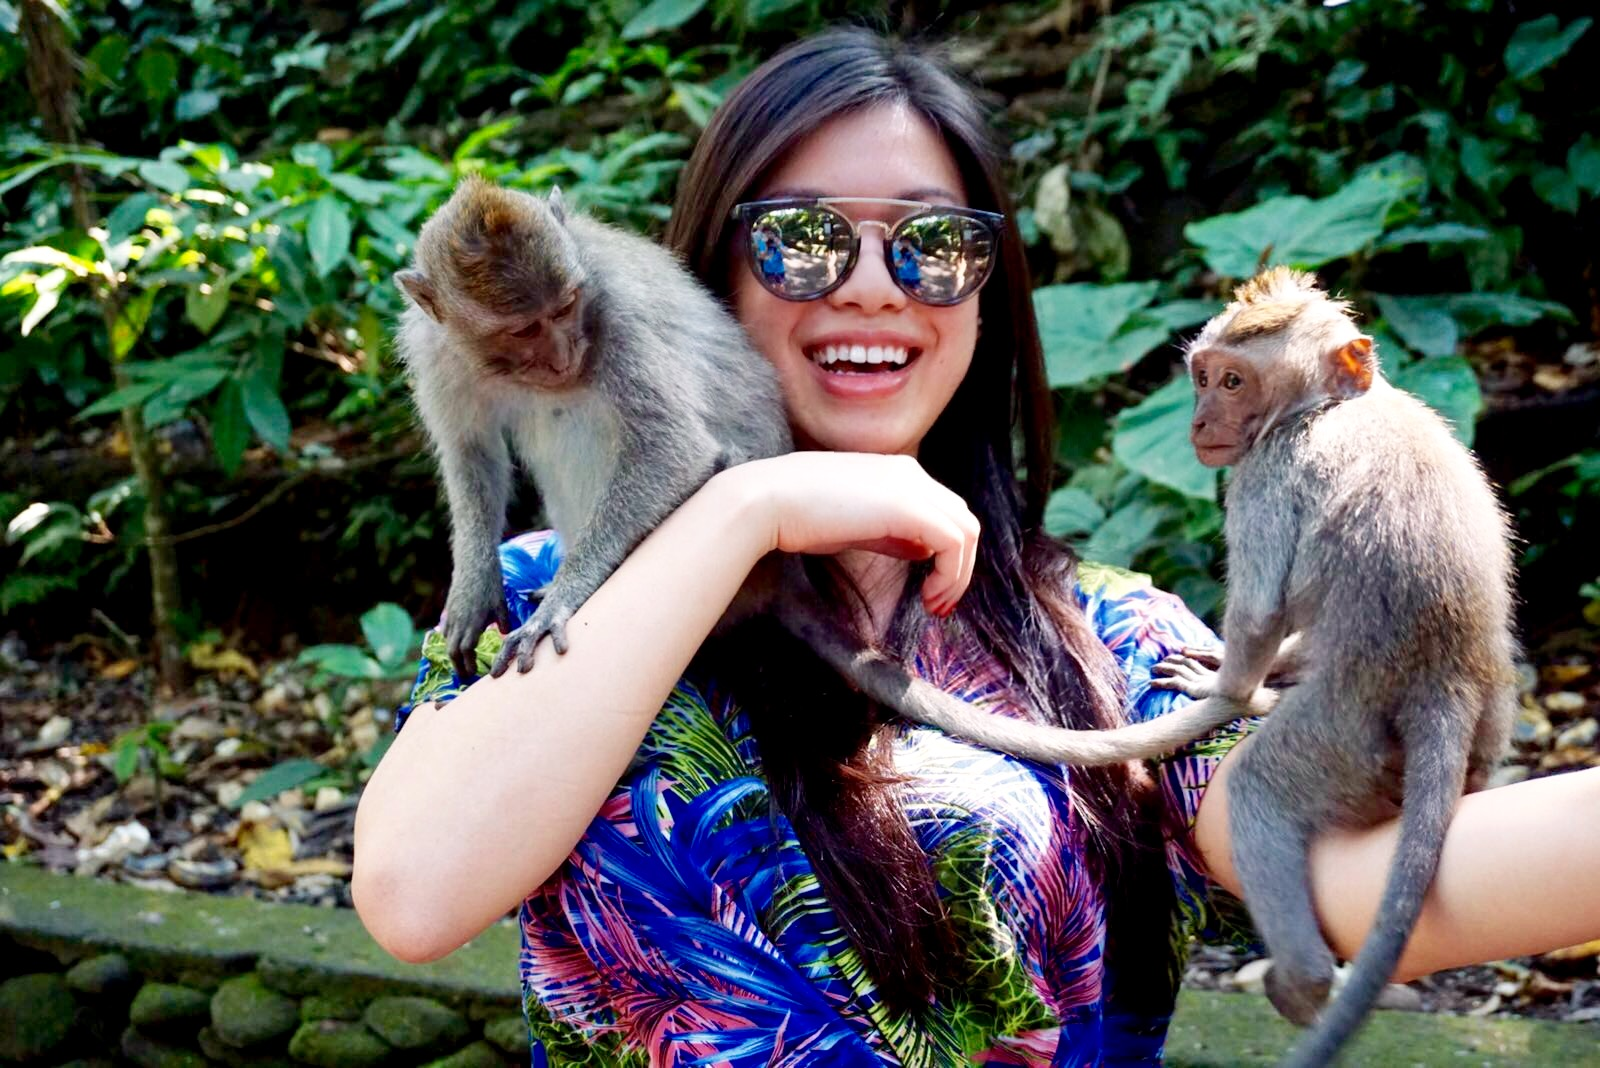 Meeting the monkeys at the monkey forest in Ubud, Bali.